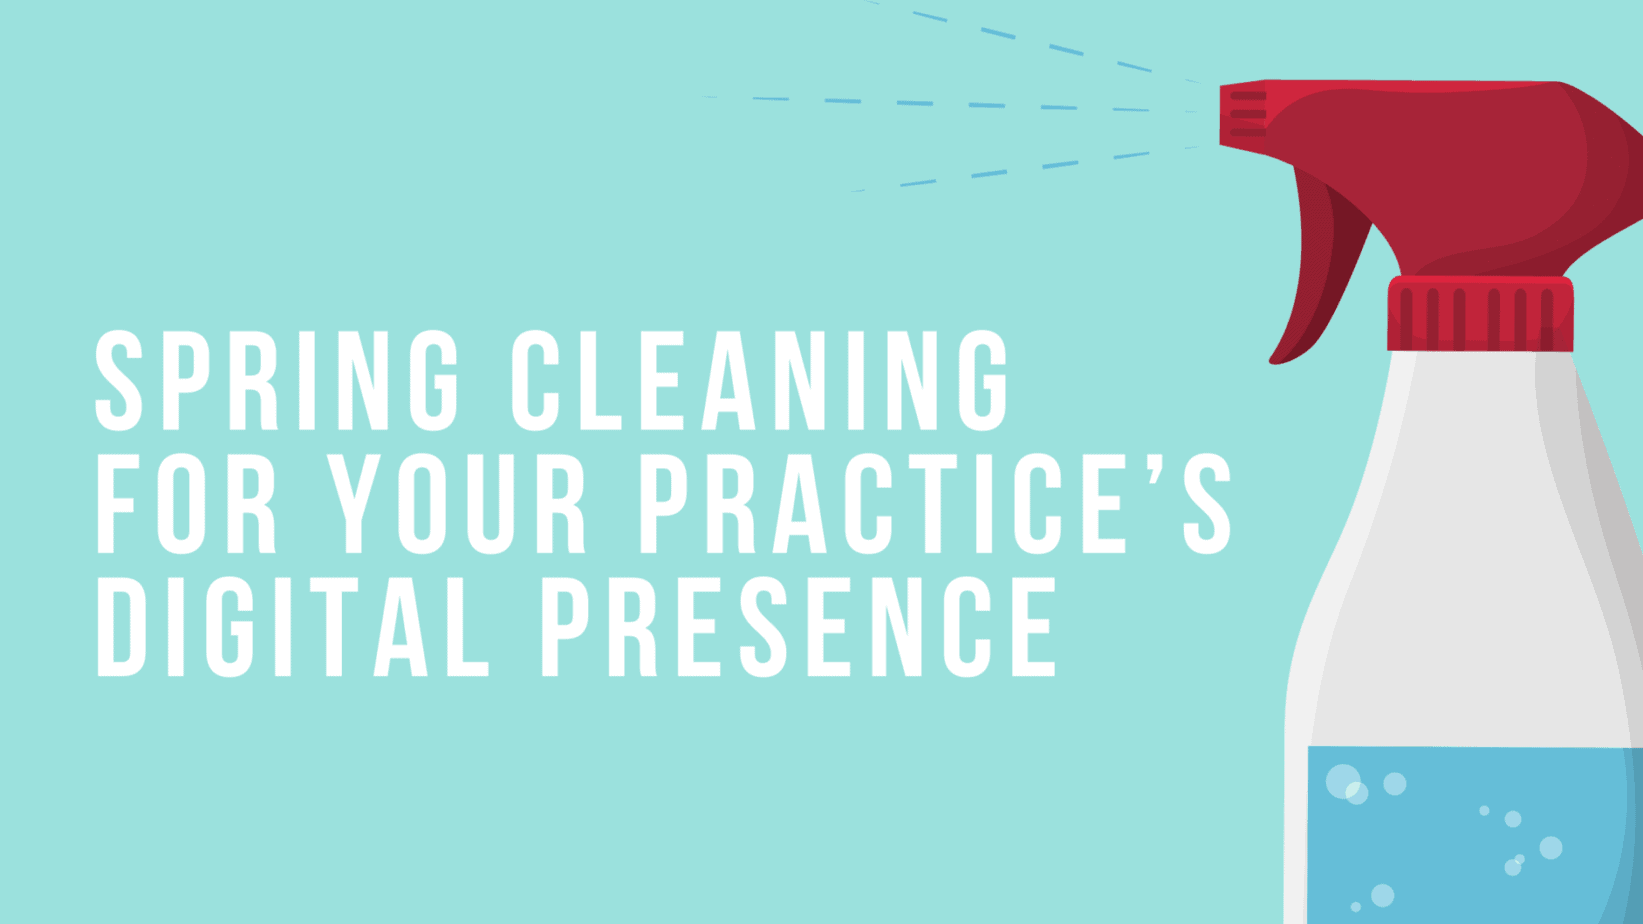 Spring Cleaning for Your Practice's Digital Presence